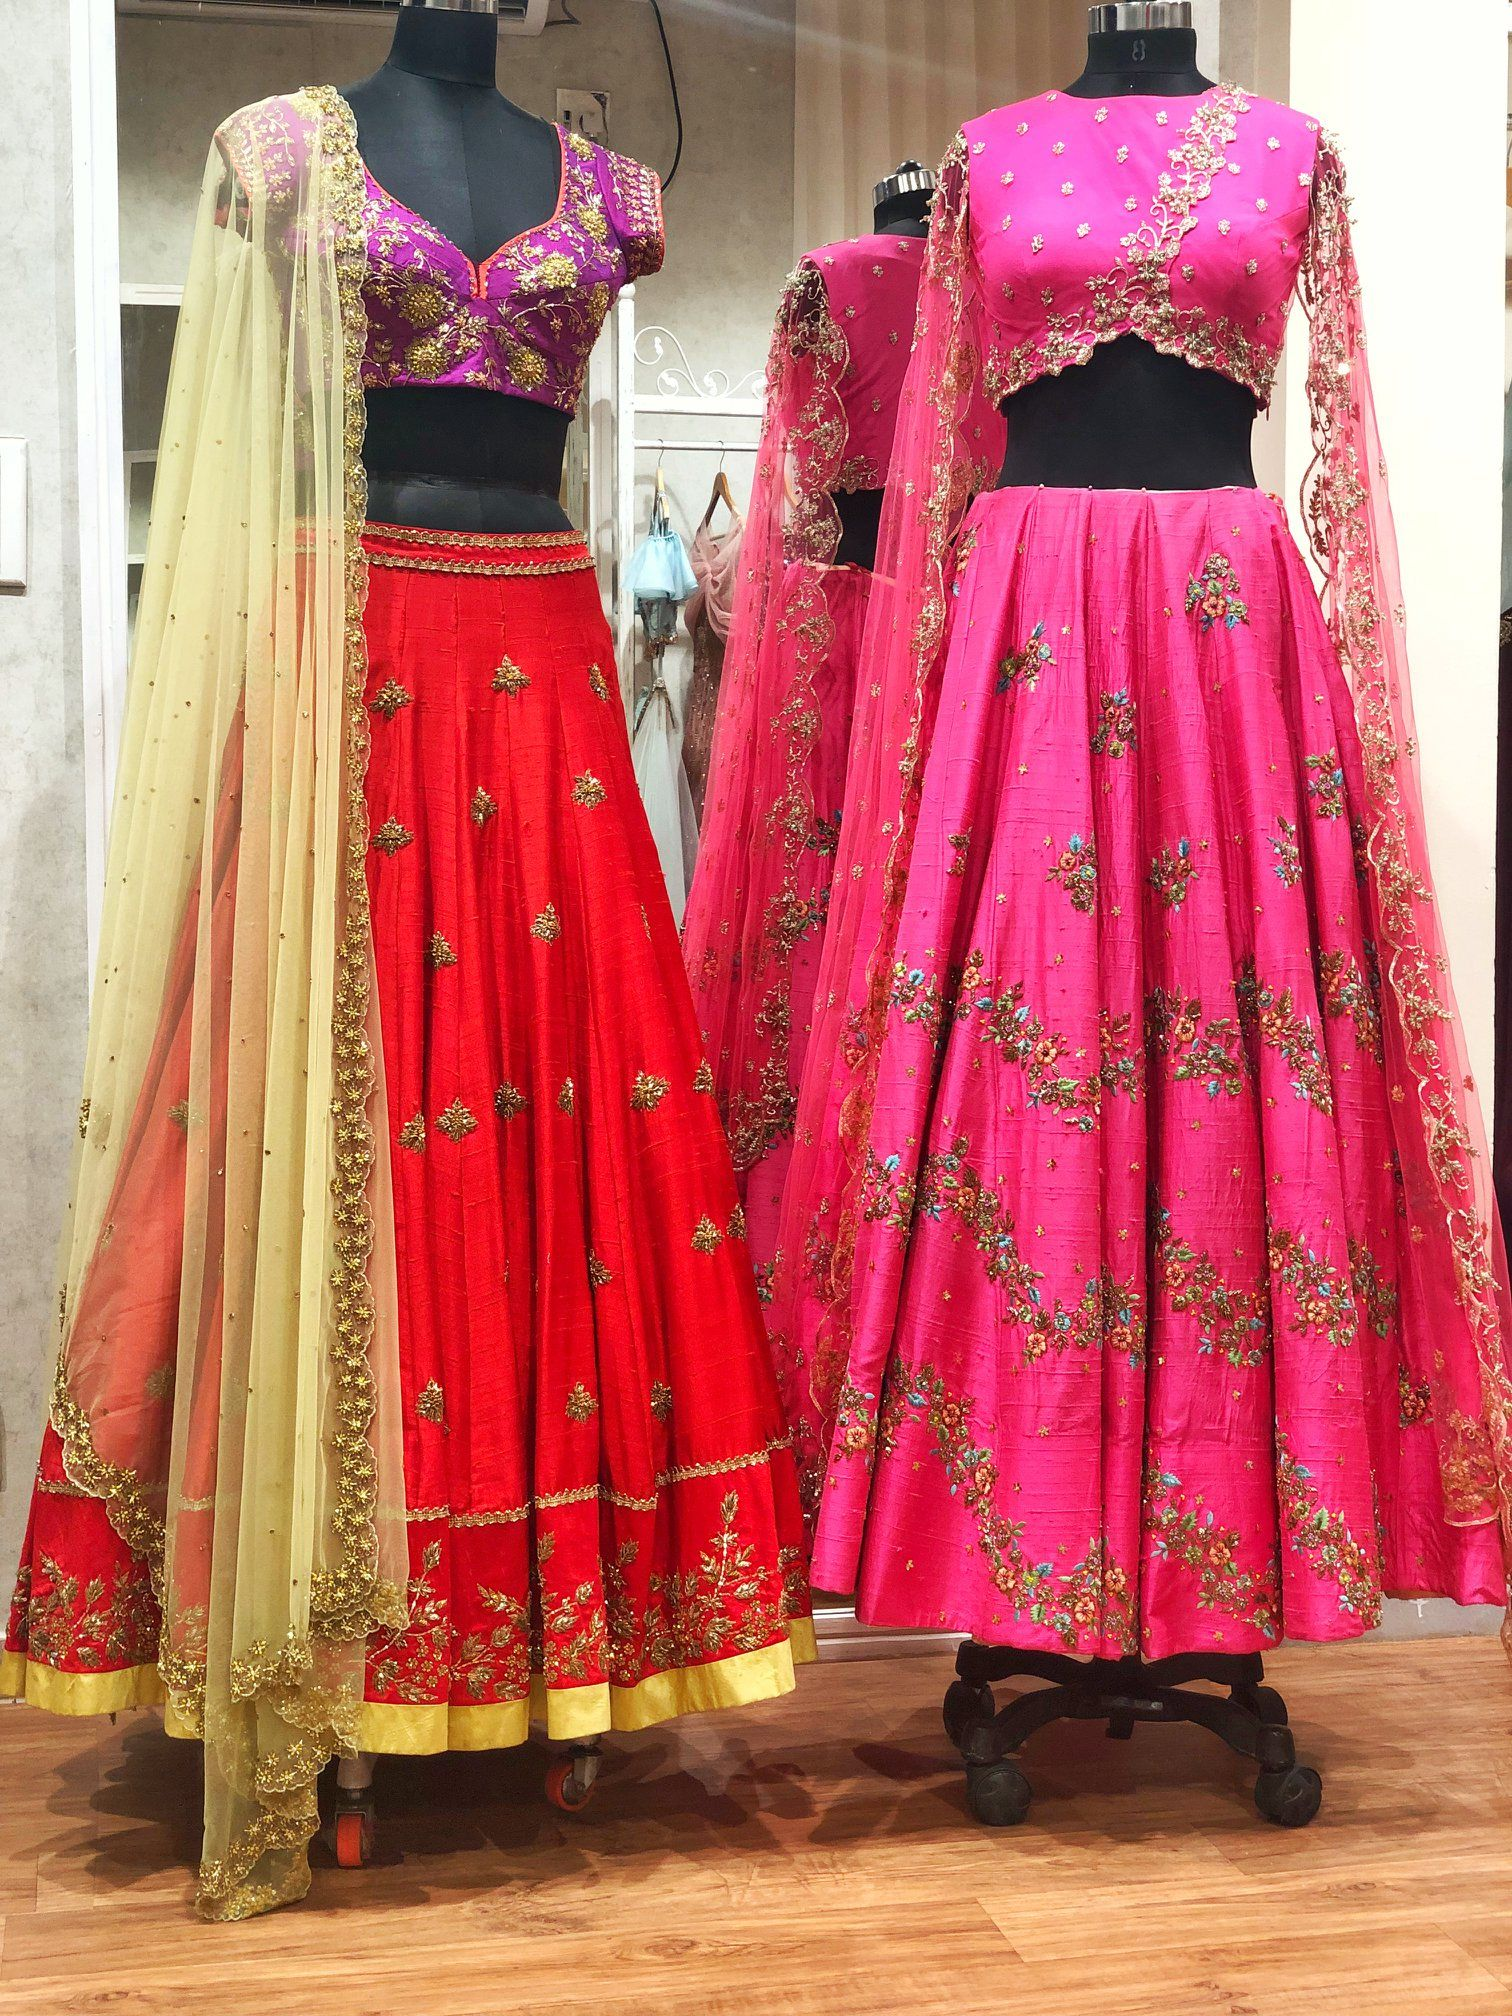 Wedding decorations yellow november 2018 Bridal Collection  Stunning pink and red color lehenga with hand